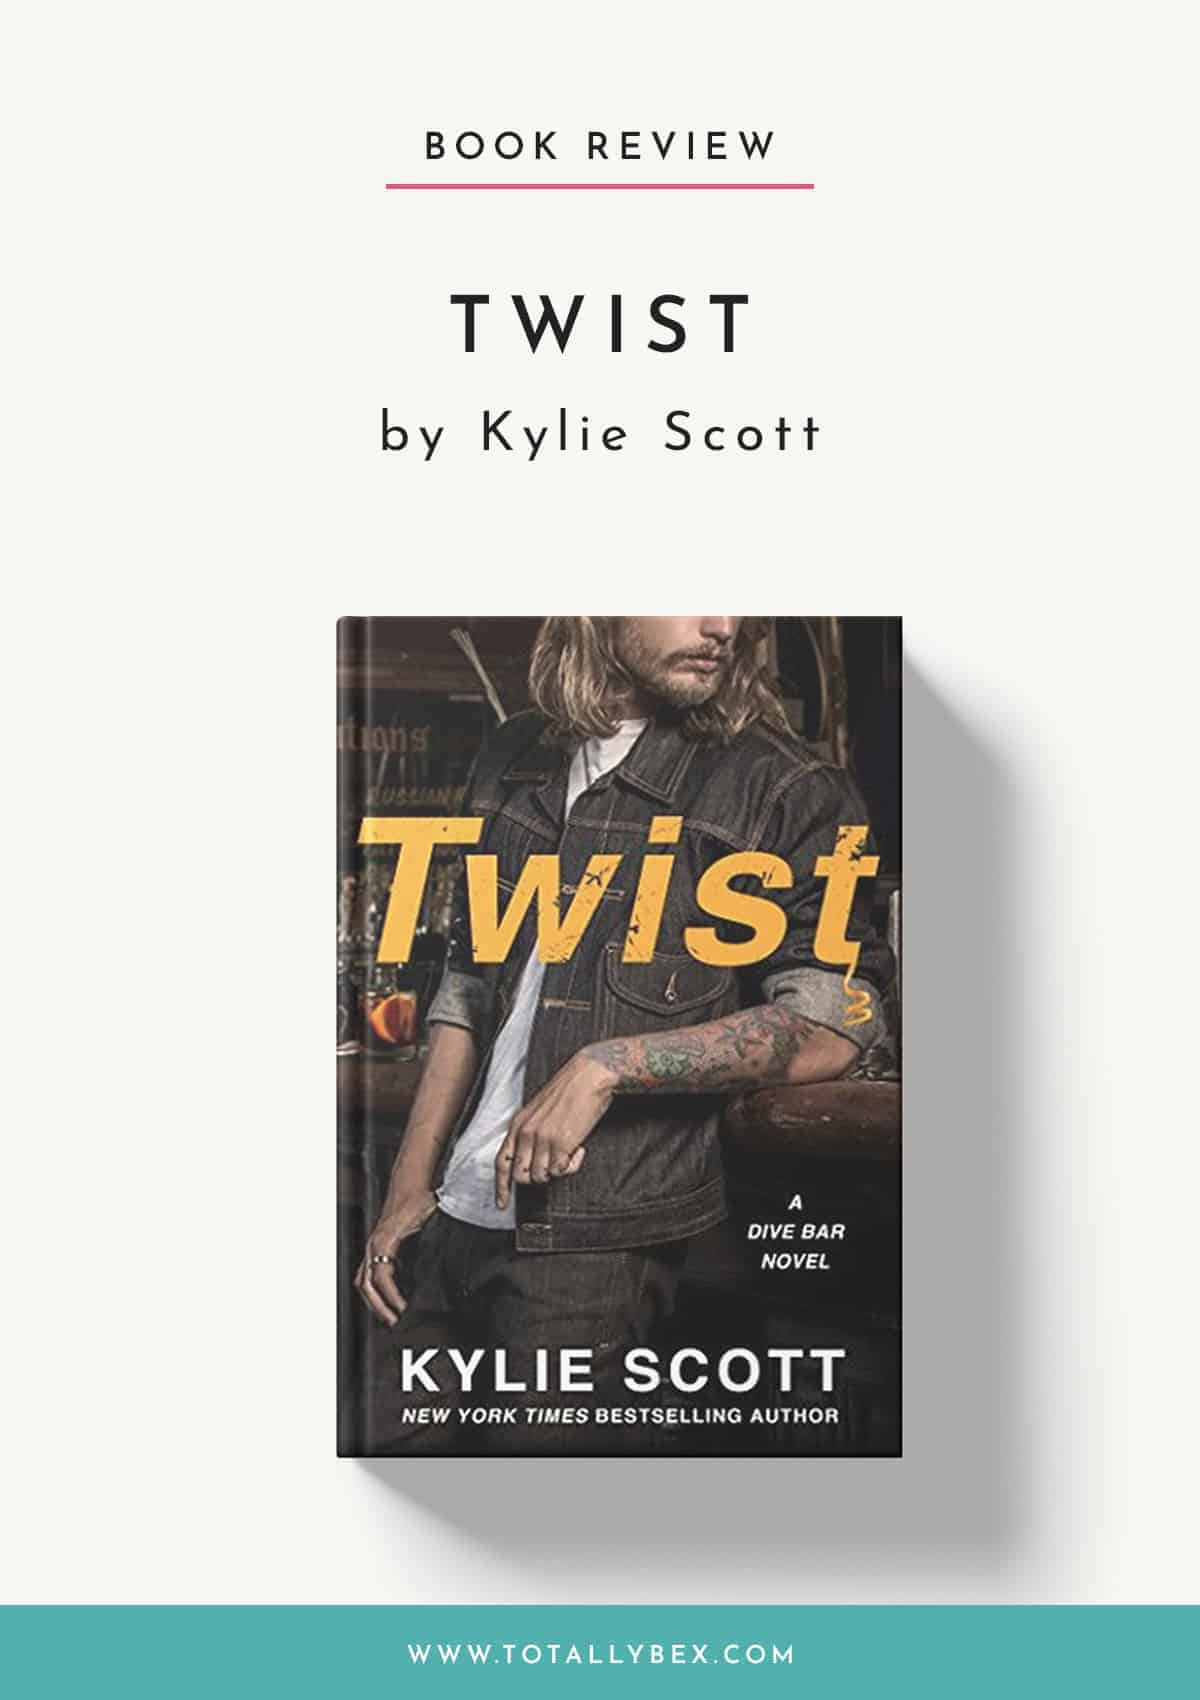 Twist by Kylie Scott-Book Review